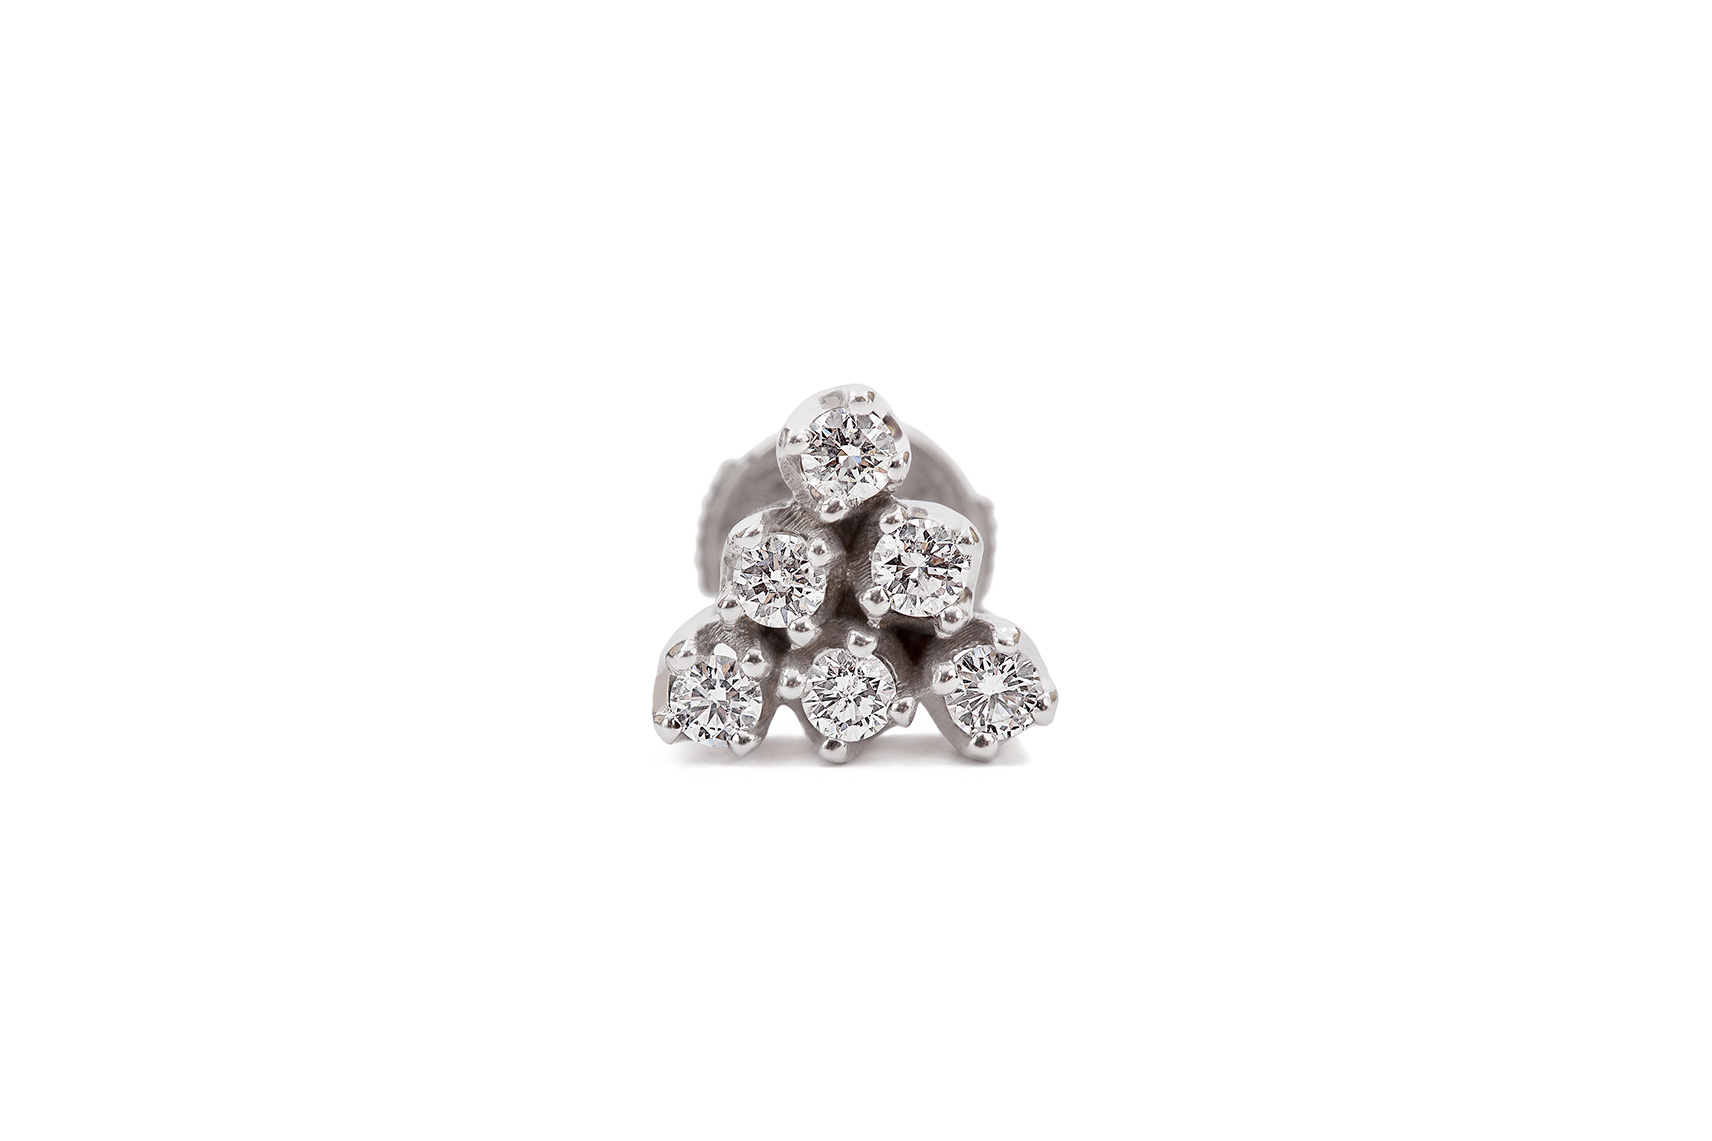 CYPHER 6 EARRING WHITE GOLD 18K 0.25 CT DIAMOND